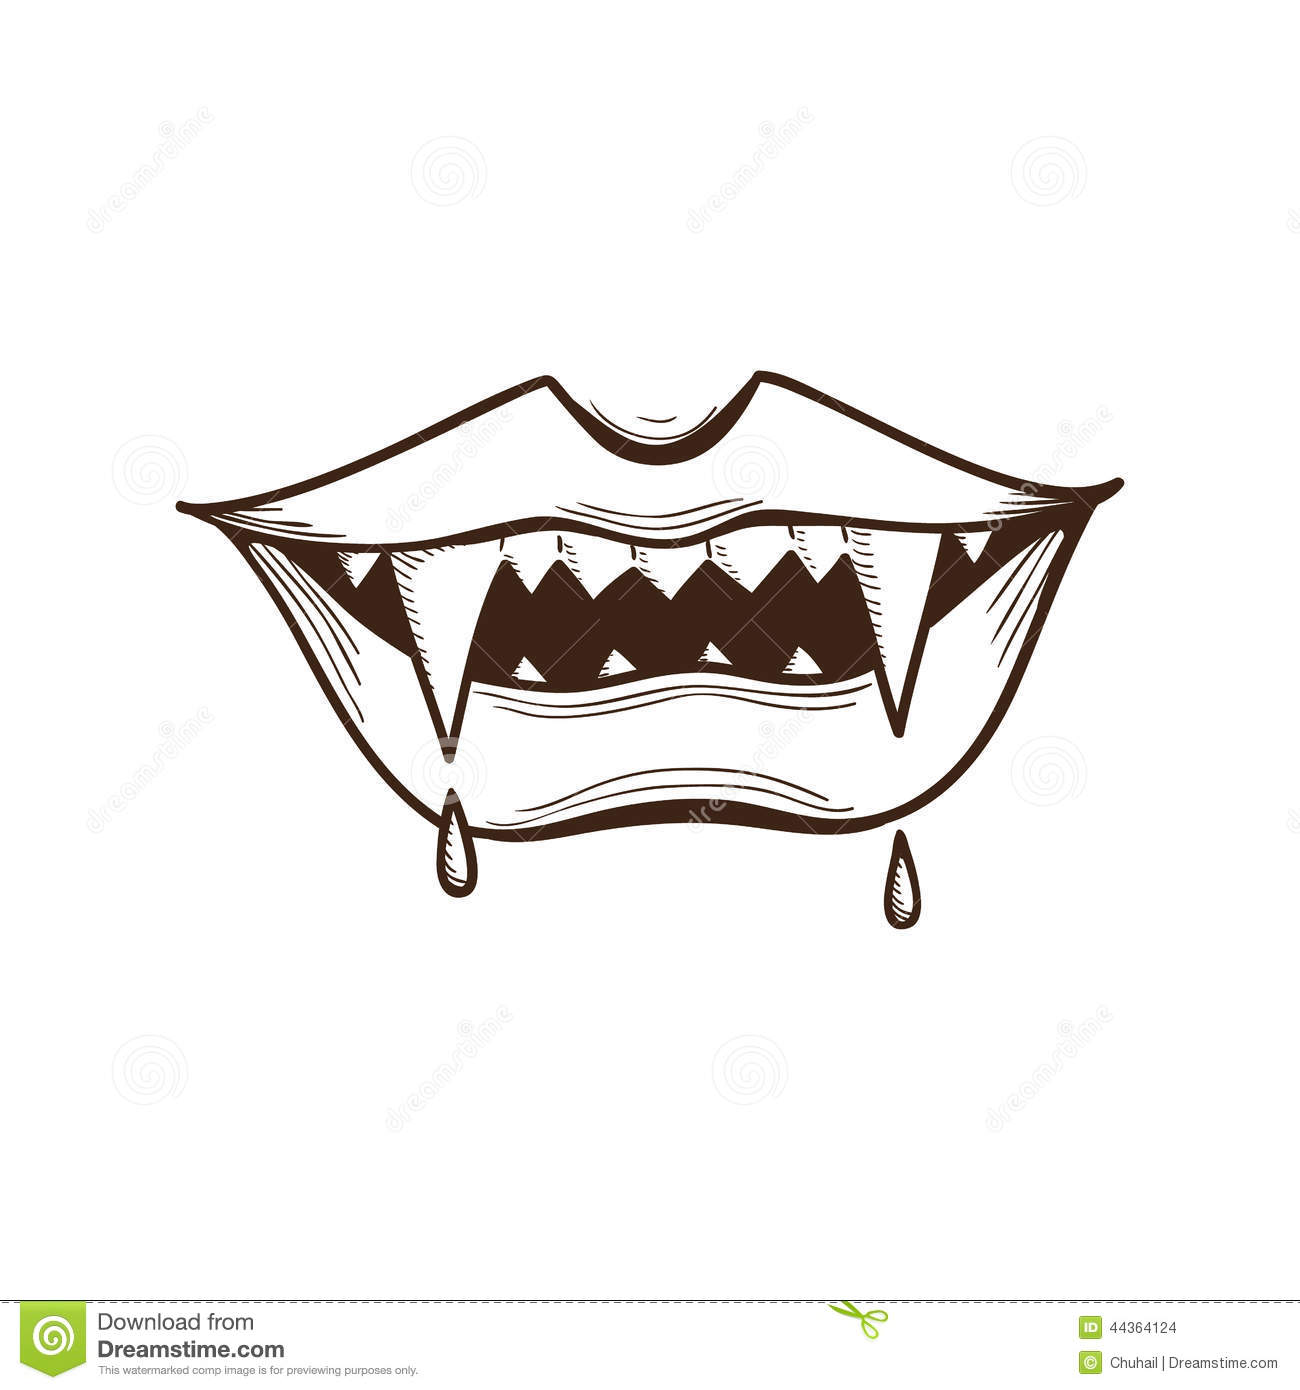 Great White Shark Sign Logo Blue Background also Number Cruncher Monster Dinosaur 1075990 likewise The Impact Of Skipping Your Bi Annual Teeth Cleanings moreover Stock Vector Tiger Wut Vektor Zeichnung Eines Tiger Kopfes also Girl Transforms Her Mouth Into Awesome. on cartoon mouth with teeth